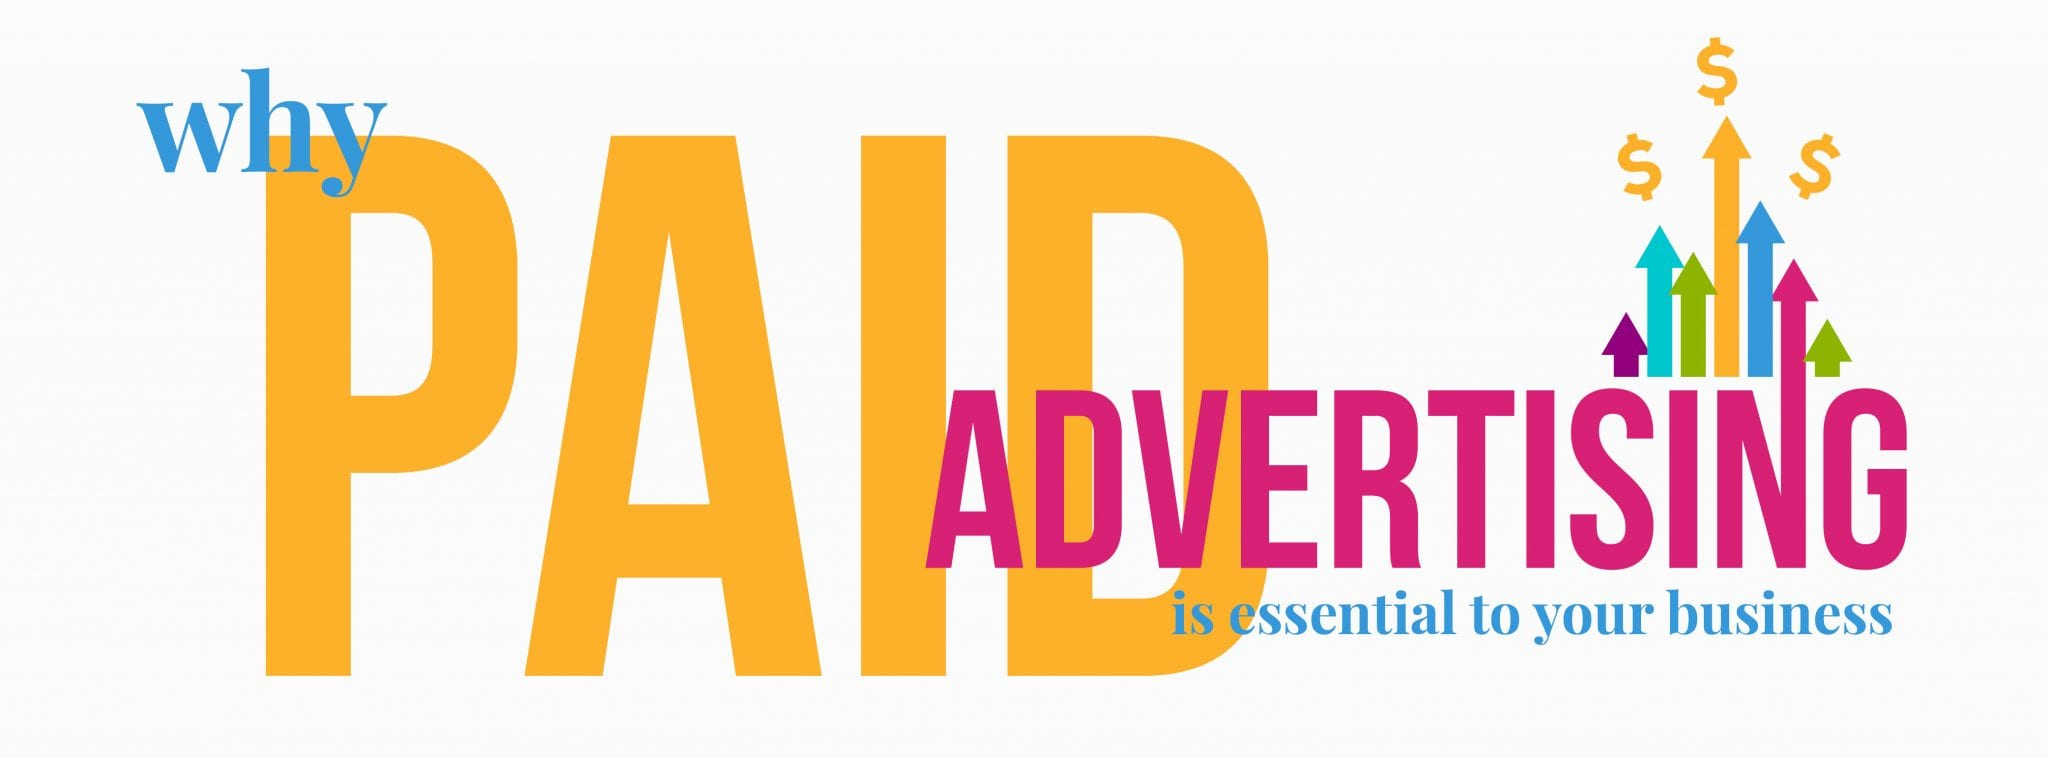 Why Paid Advertising is Essential to your business